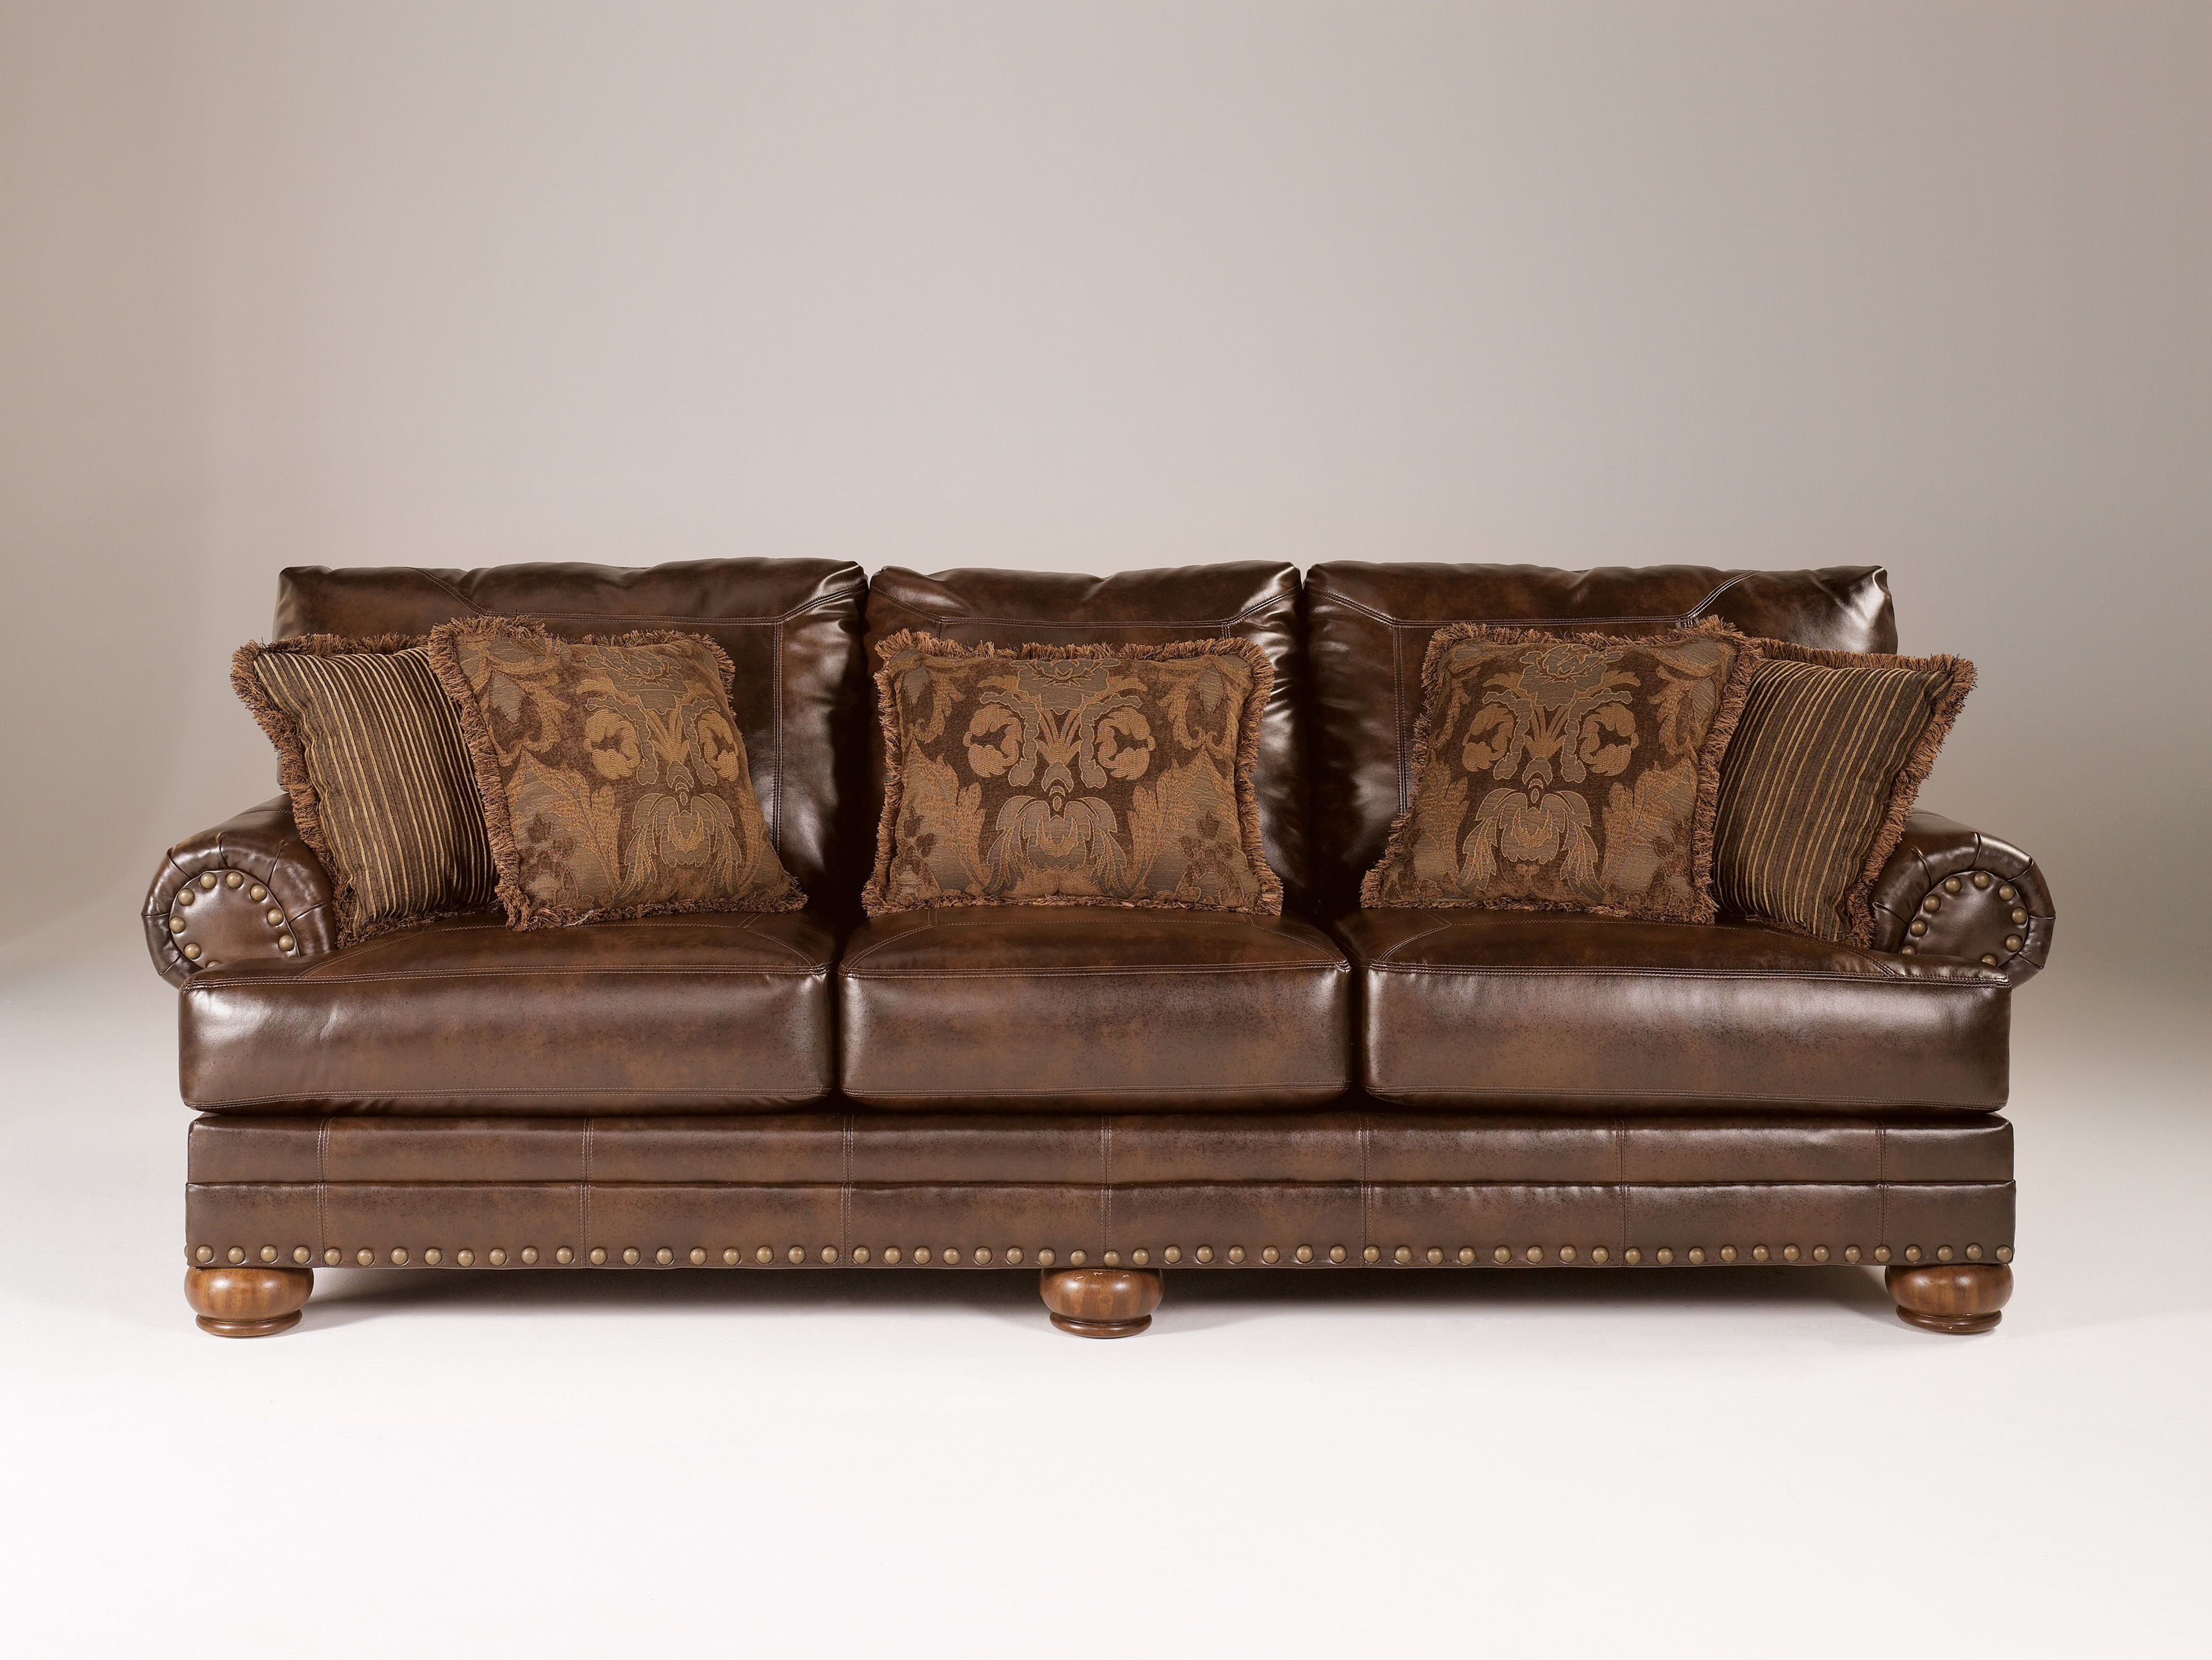 ashley leather living room furniture. Ashley Furniture Durablend Antique Sofa Click To Enlarge Loading. Leather Living Room F